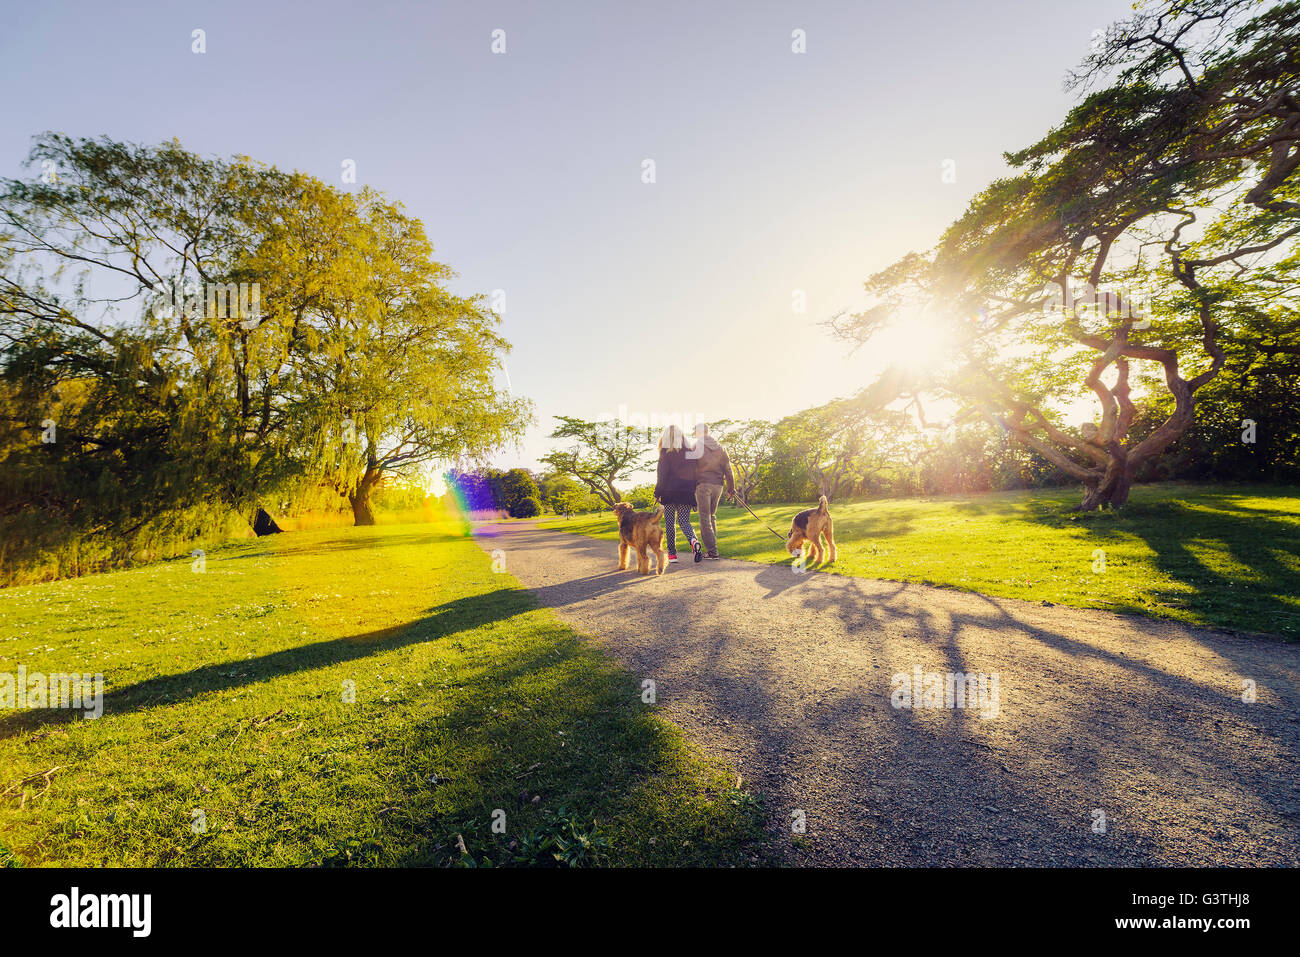 Sweden, Skane, Malmo, Malmo Folkets park, Mid-adult couple with dogs - Stock Image